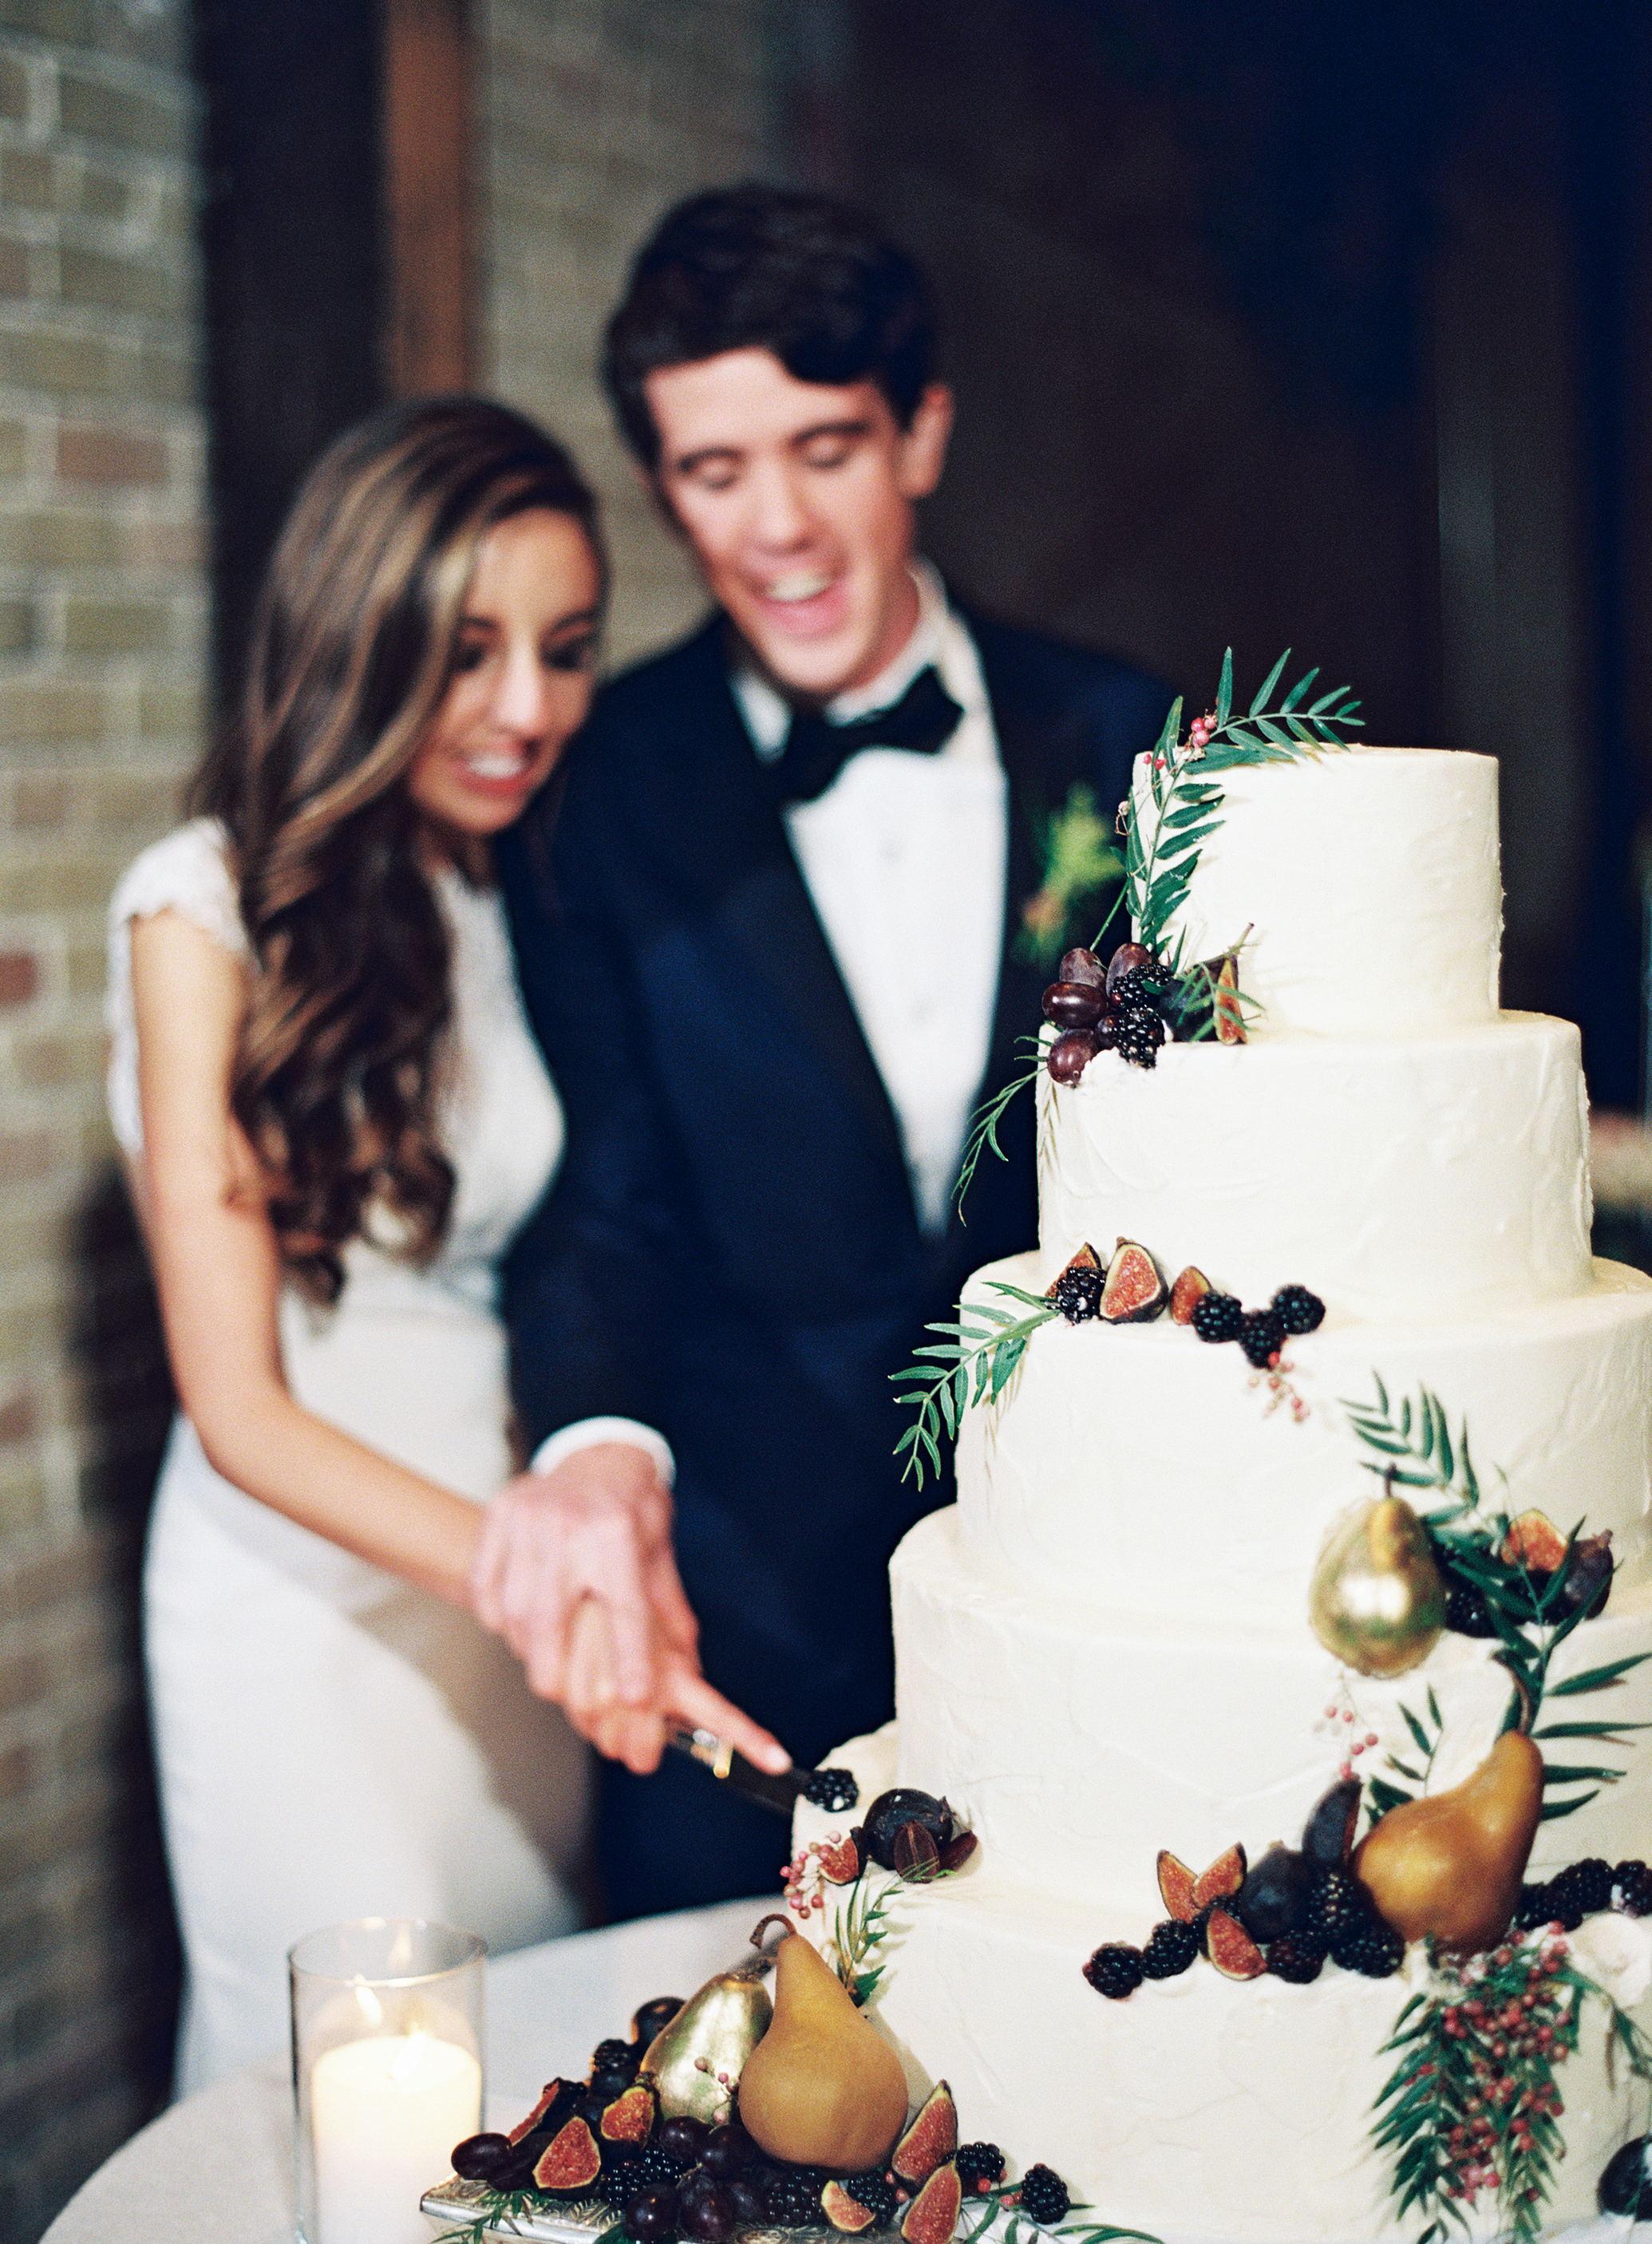 When Should You Cut Your Wedding Cake Martha Stewart Weddings